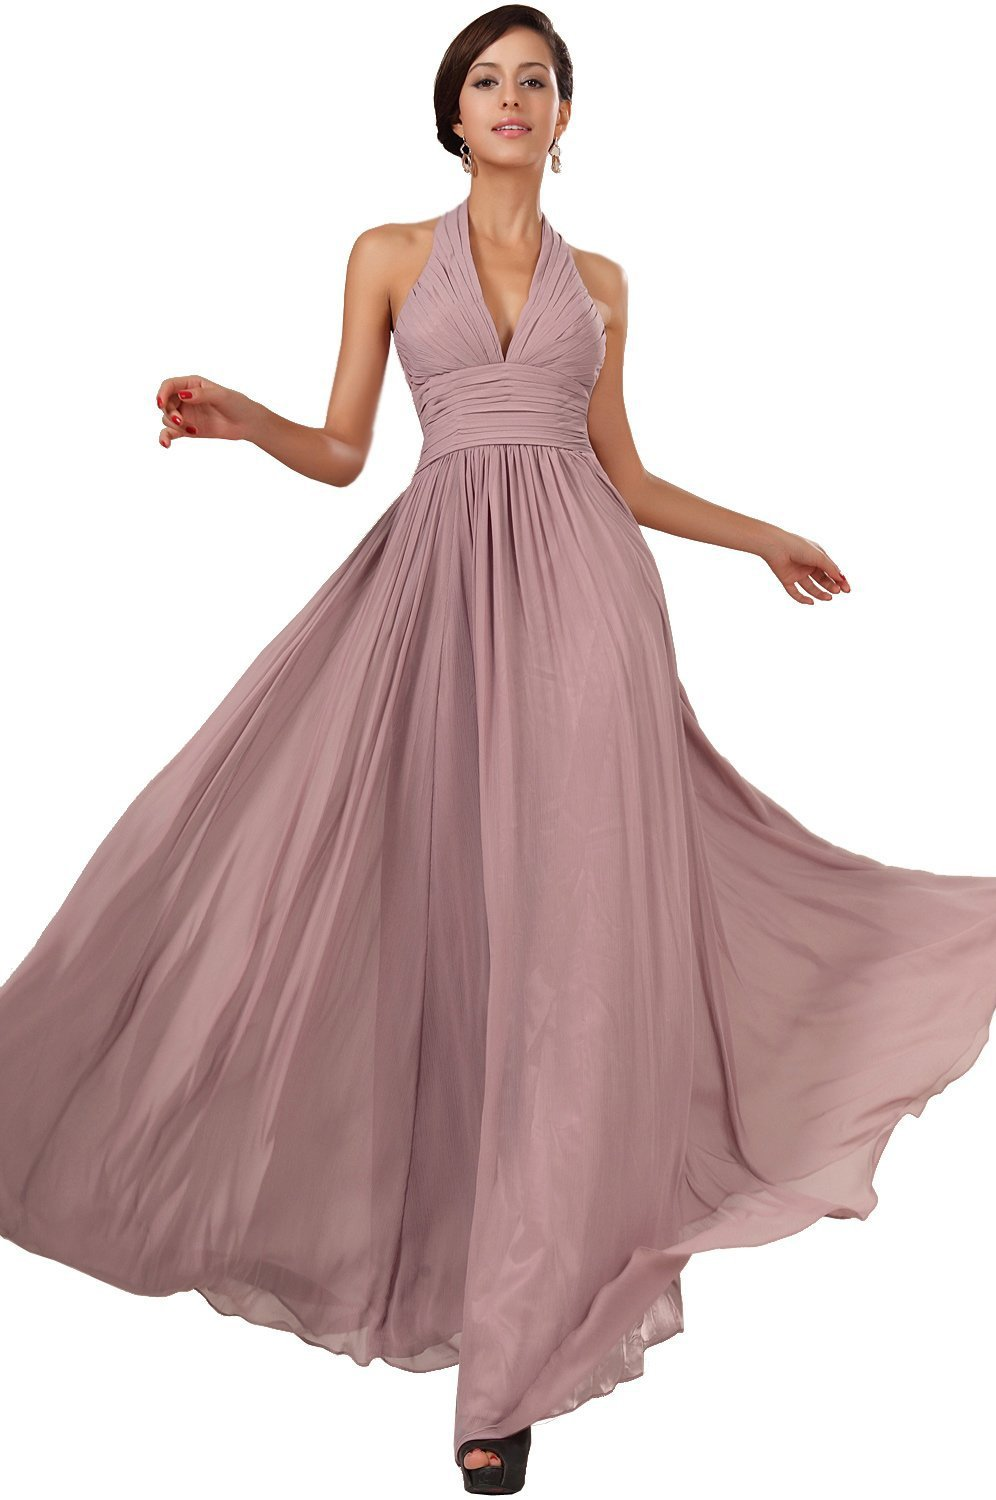 cdf0564a3f2c Get Quotations · 0053 dusty pink halter v neck ruffle chiffon formal for  ladies elegant maxi plus size evening